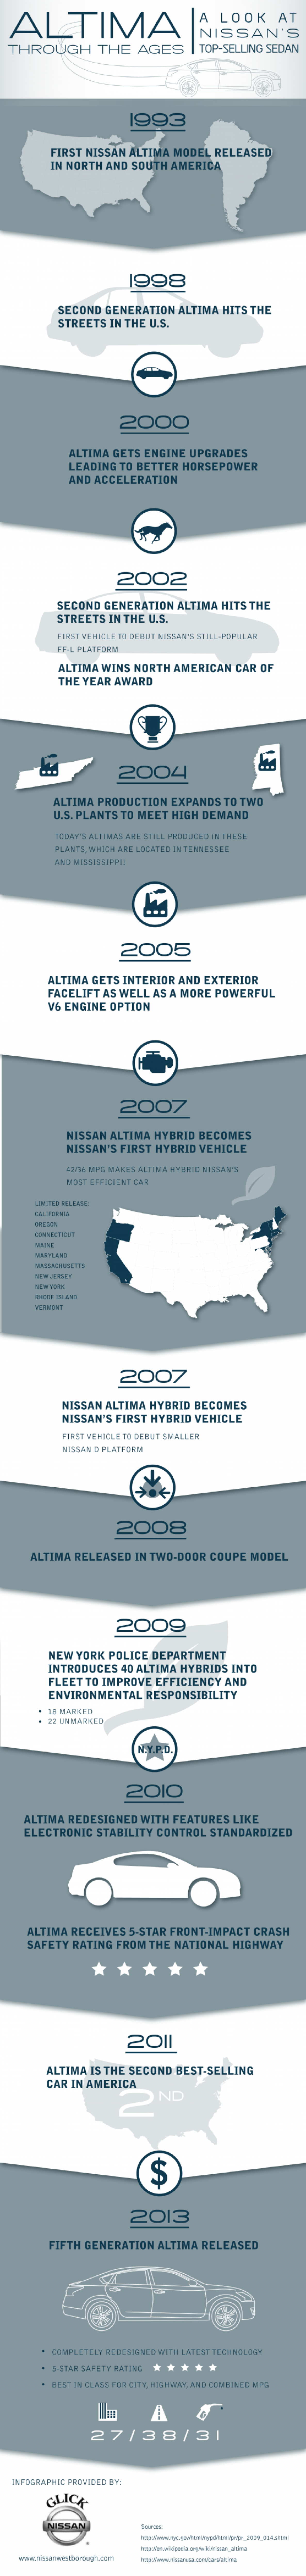 Altima Through the Ages: A Look at Nissan's Top-Selling Sedan Infographic